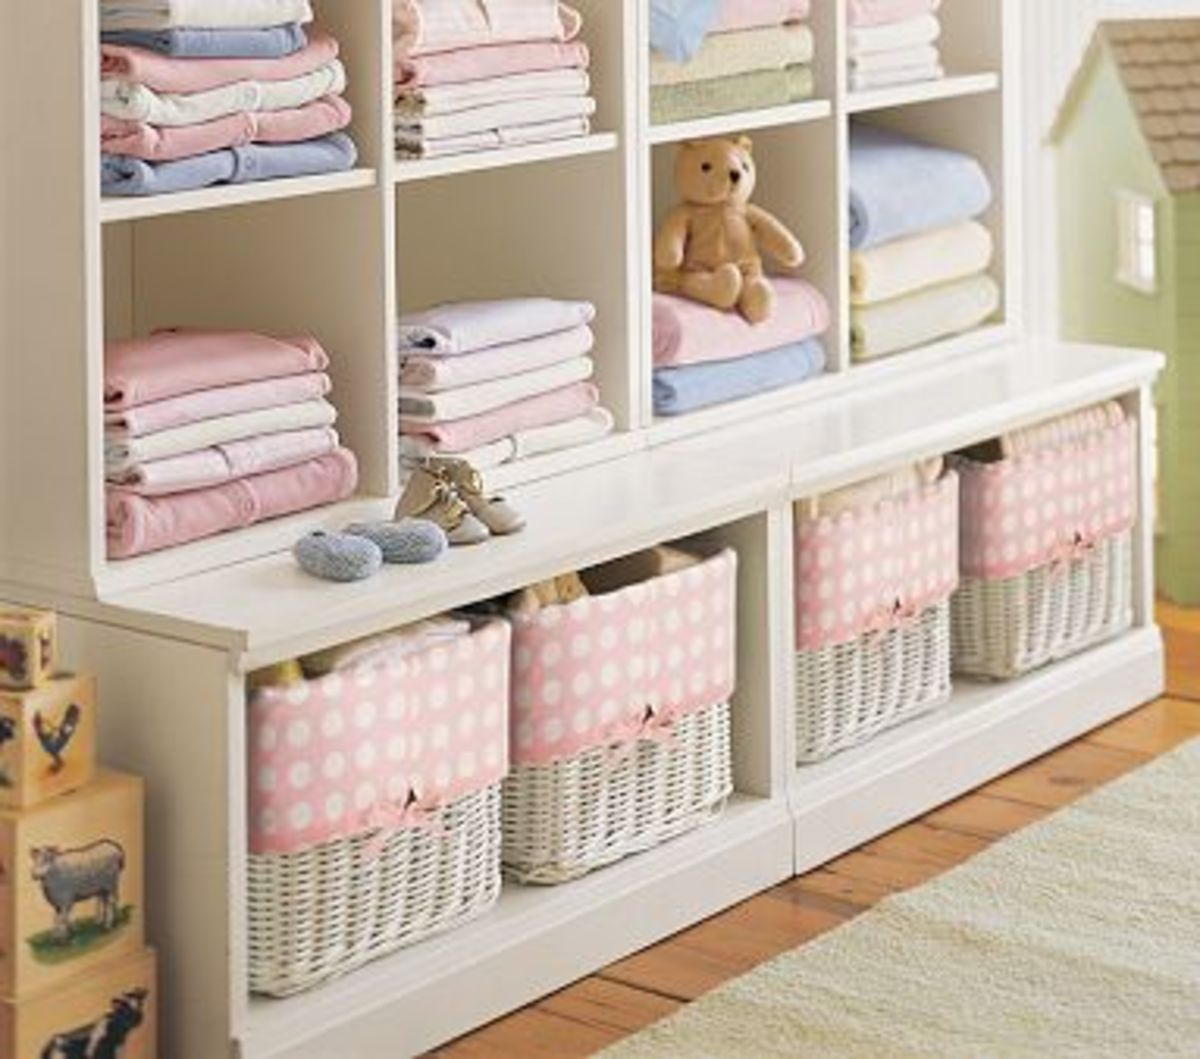 Cameron 2 Cubby & 2 Base Set - (Image Credit: Pottery Barn Kids)